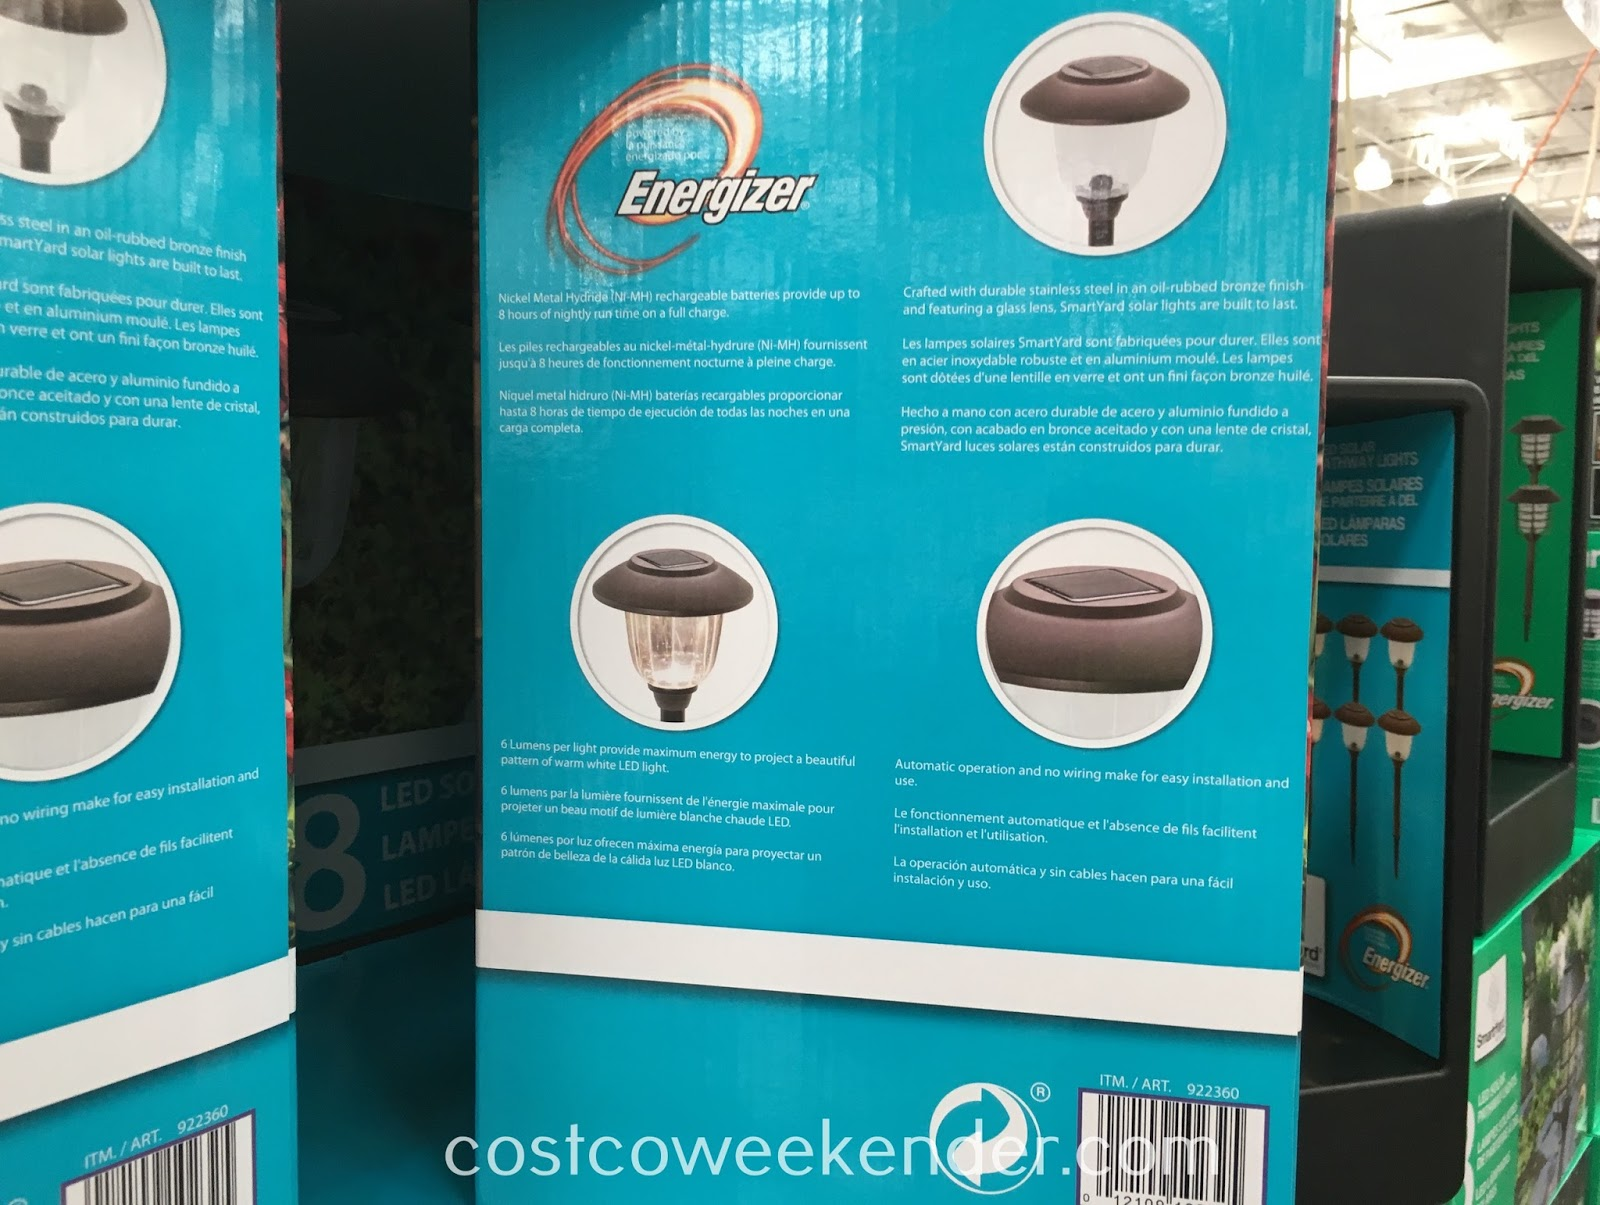 Costco 922360 - SmartYard LED Solar Pathway Lights: great for the backyard or the front of your home